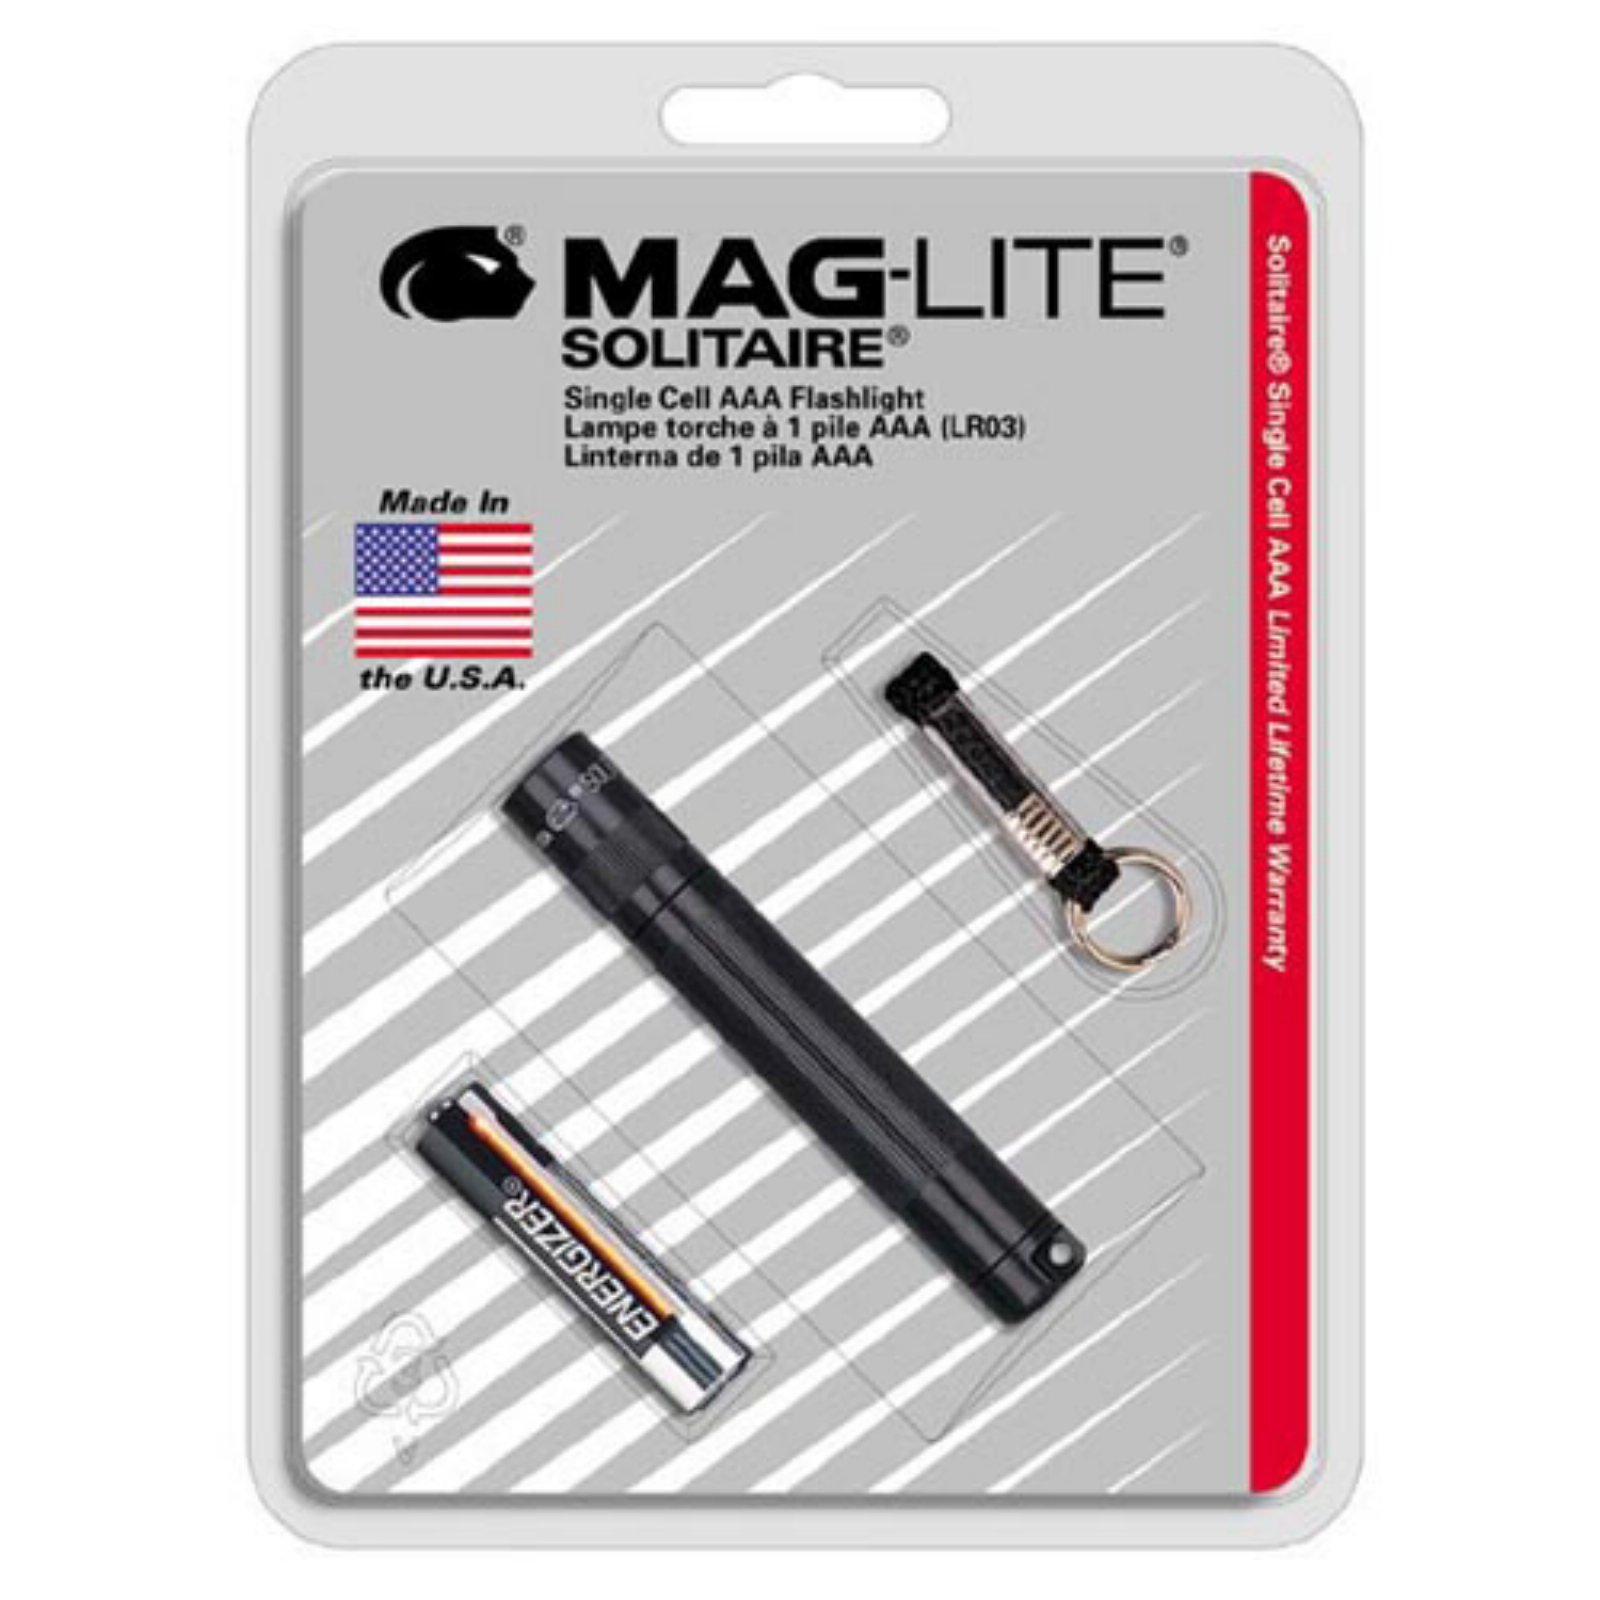 MagLite Solitaire Flashlight by MAG Instrument